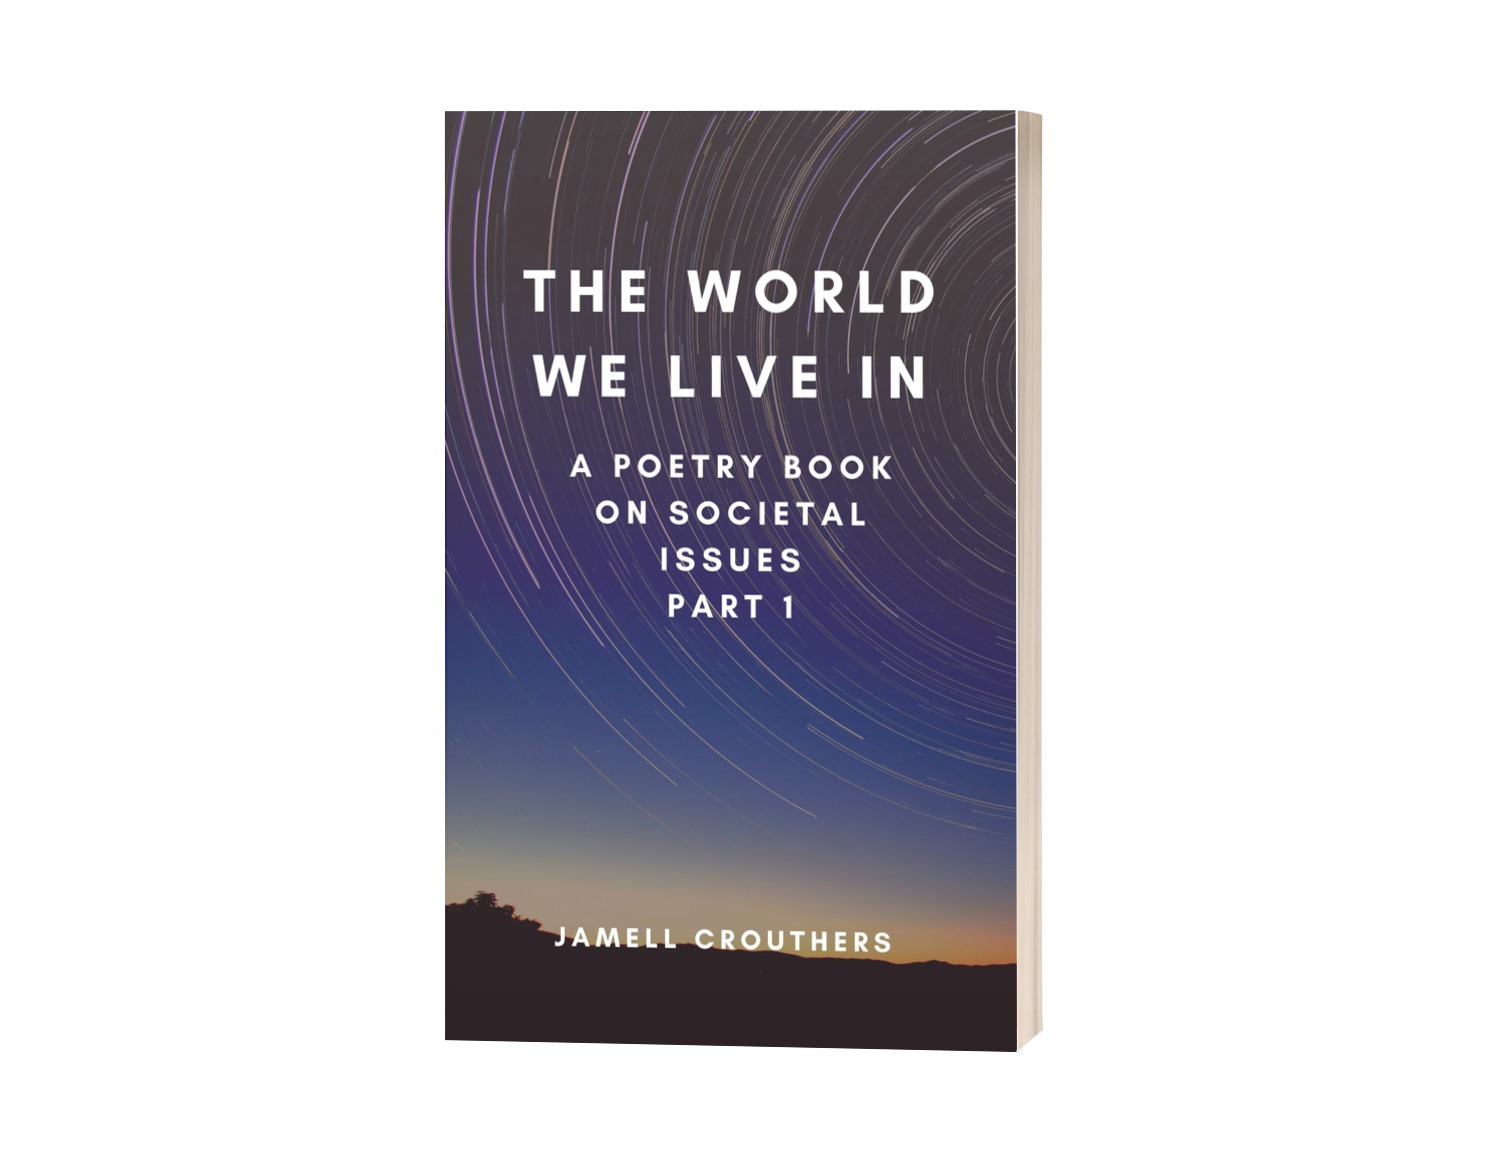 The World We Live In is a book series that deals with various social issues from alcohol addiction to drug addiction, domestic violence and other major social issues that impact us daily.